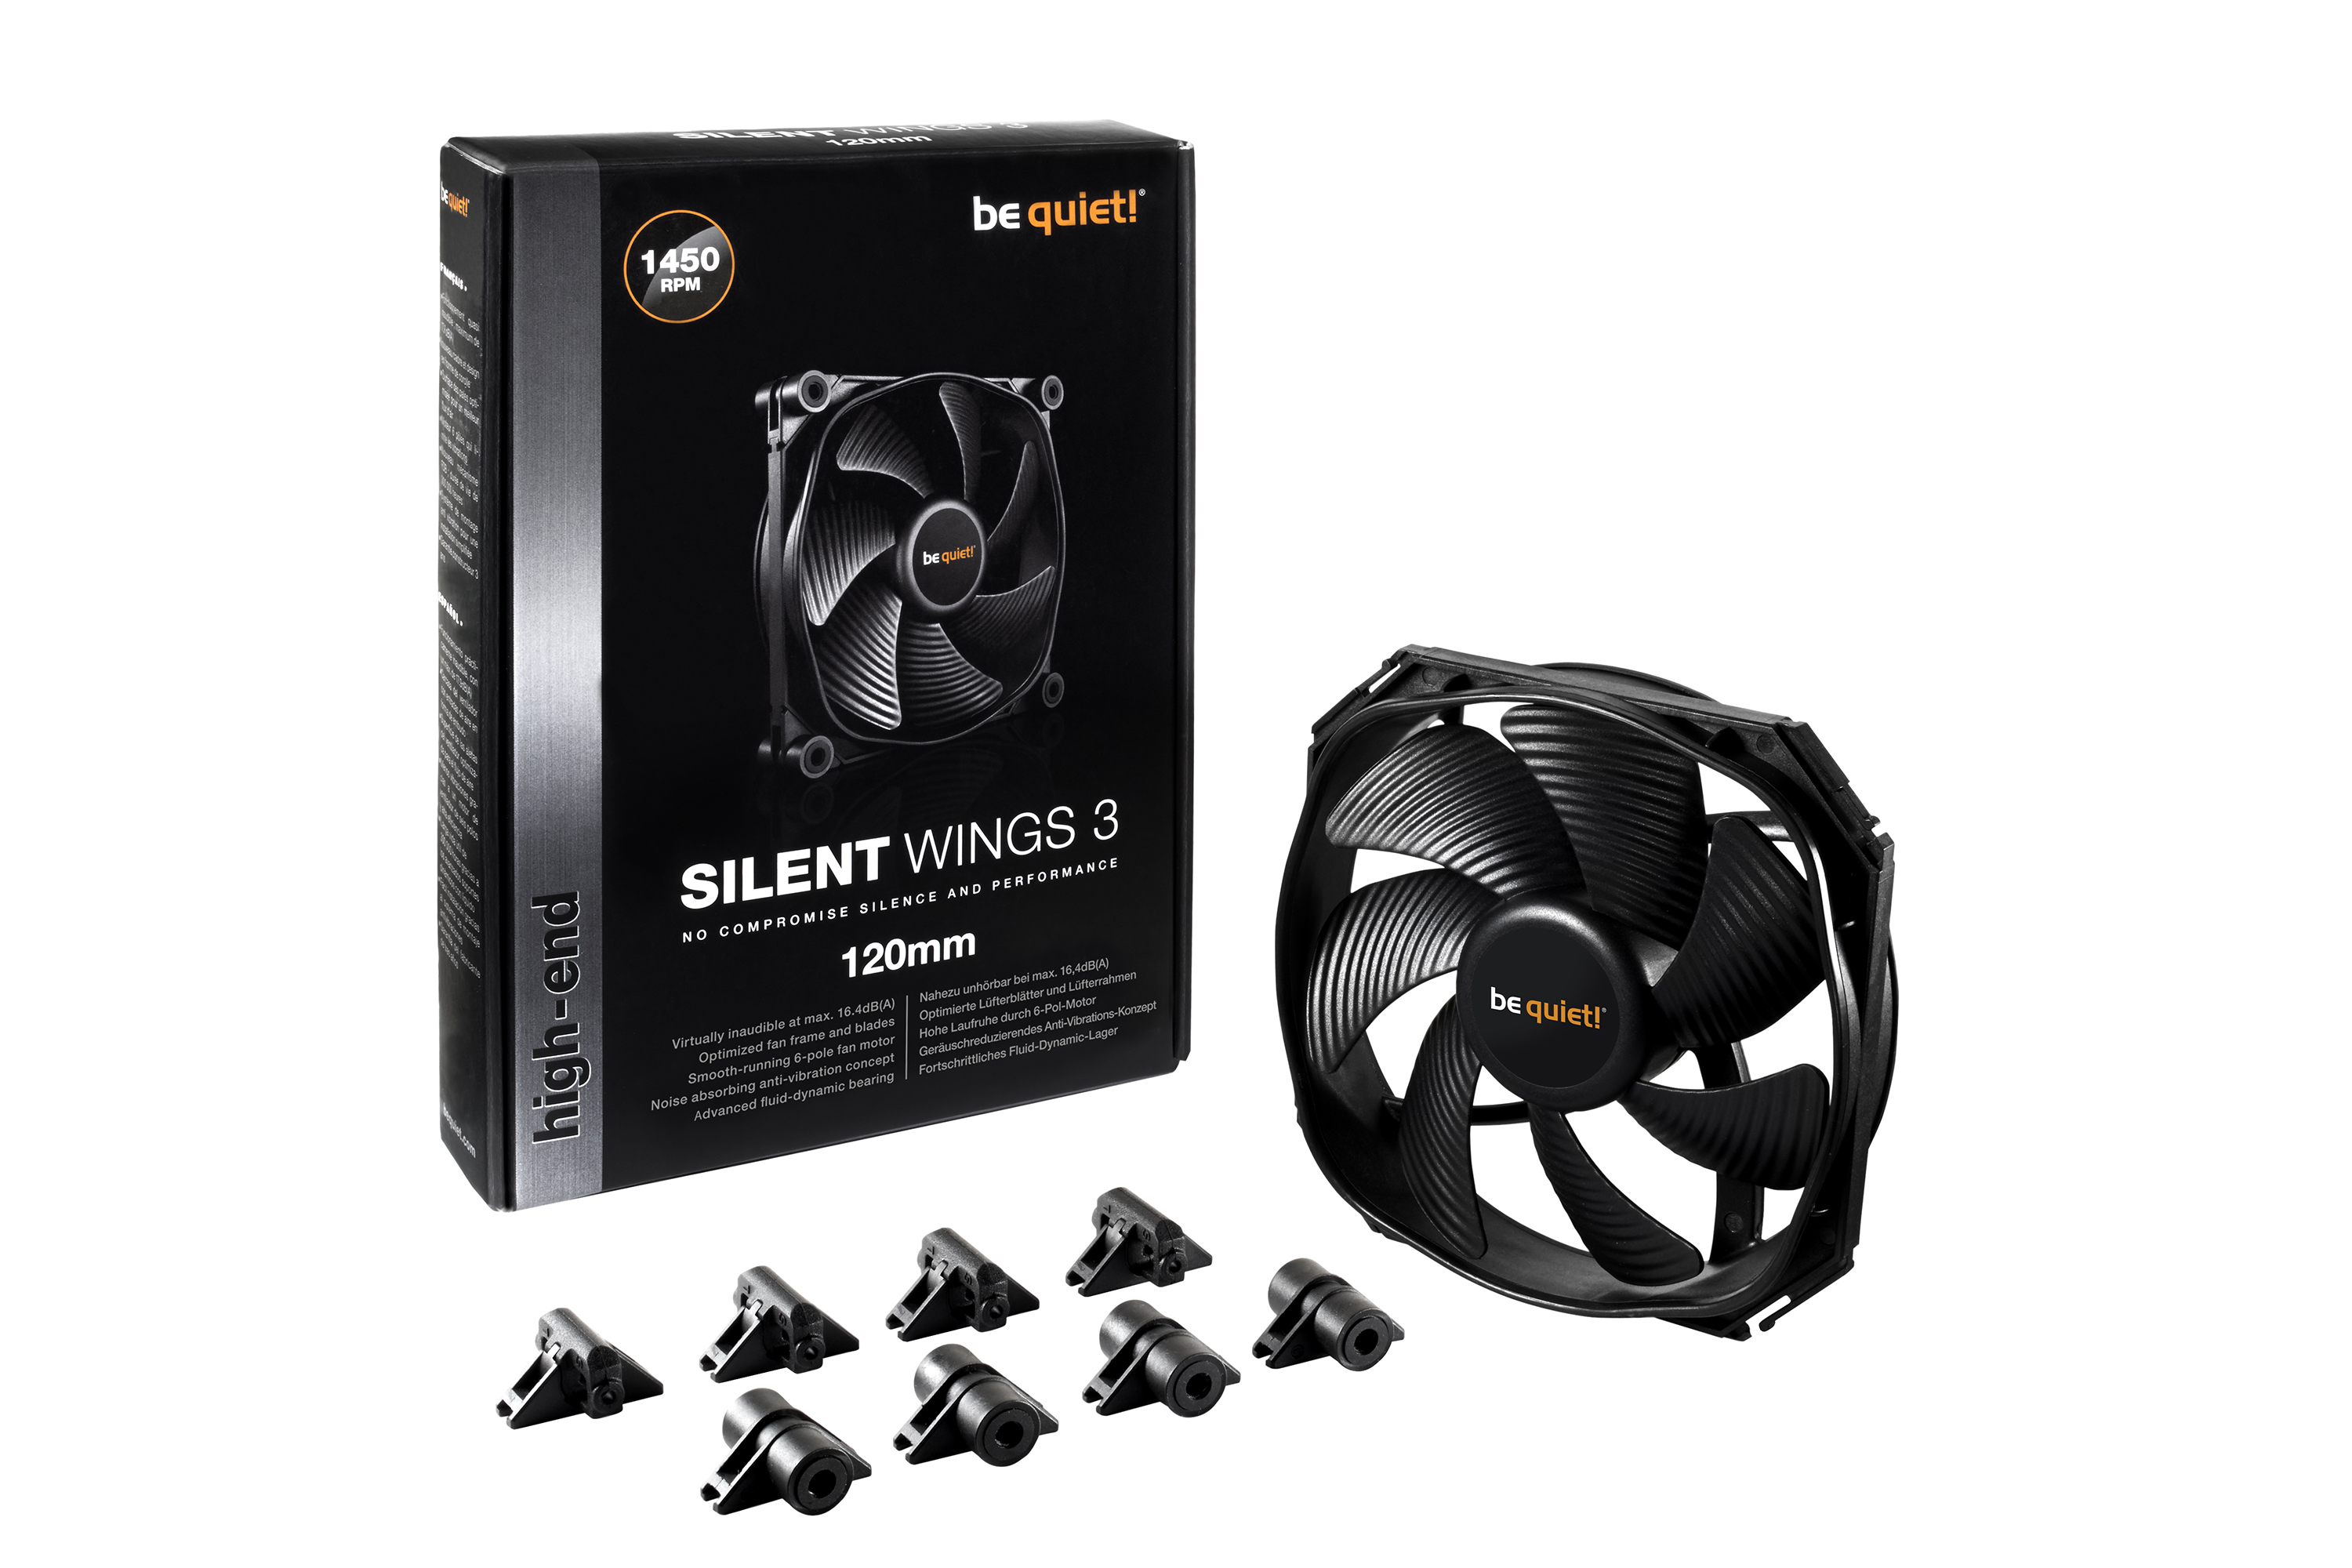 Be quiet silent wings 3 cpu fans germany